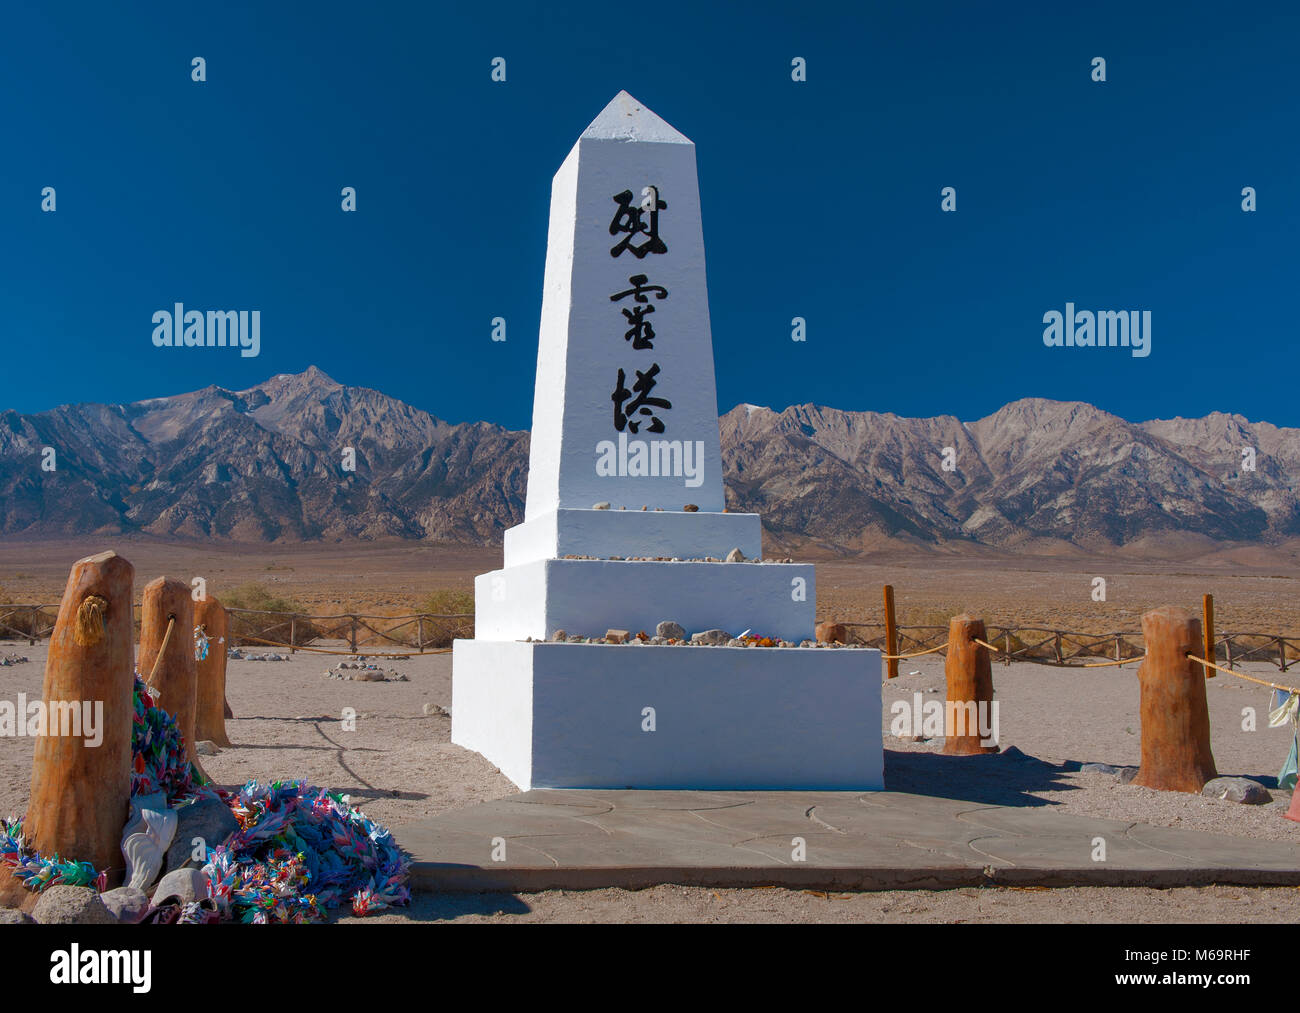 Obelisk, Manzanar National Historical Monument, Inyo National Forest, Eastern Sierra, California - Stock Image